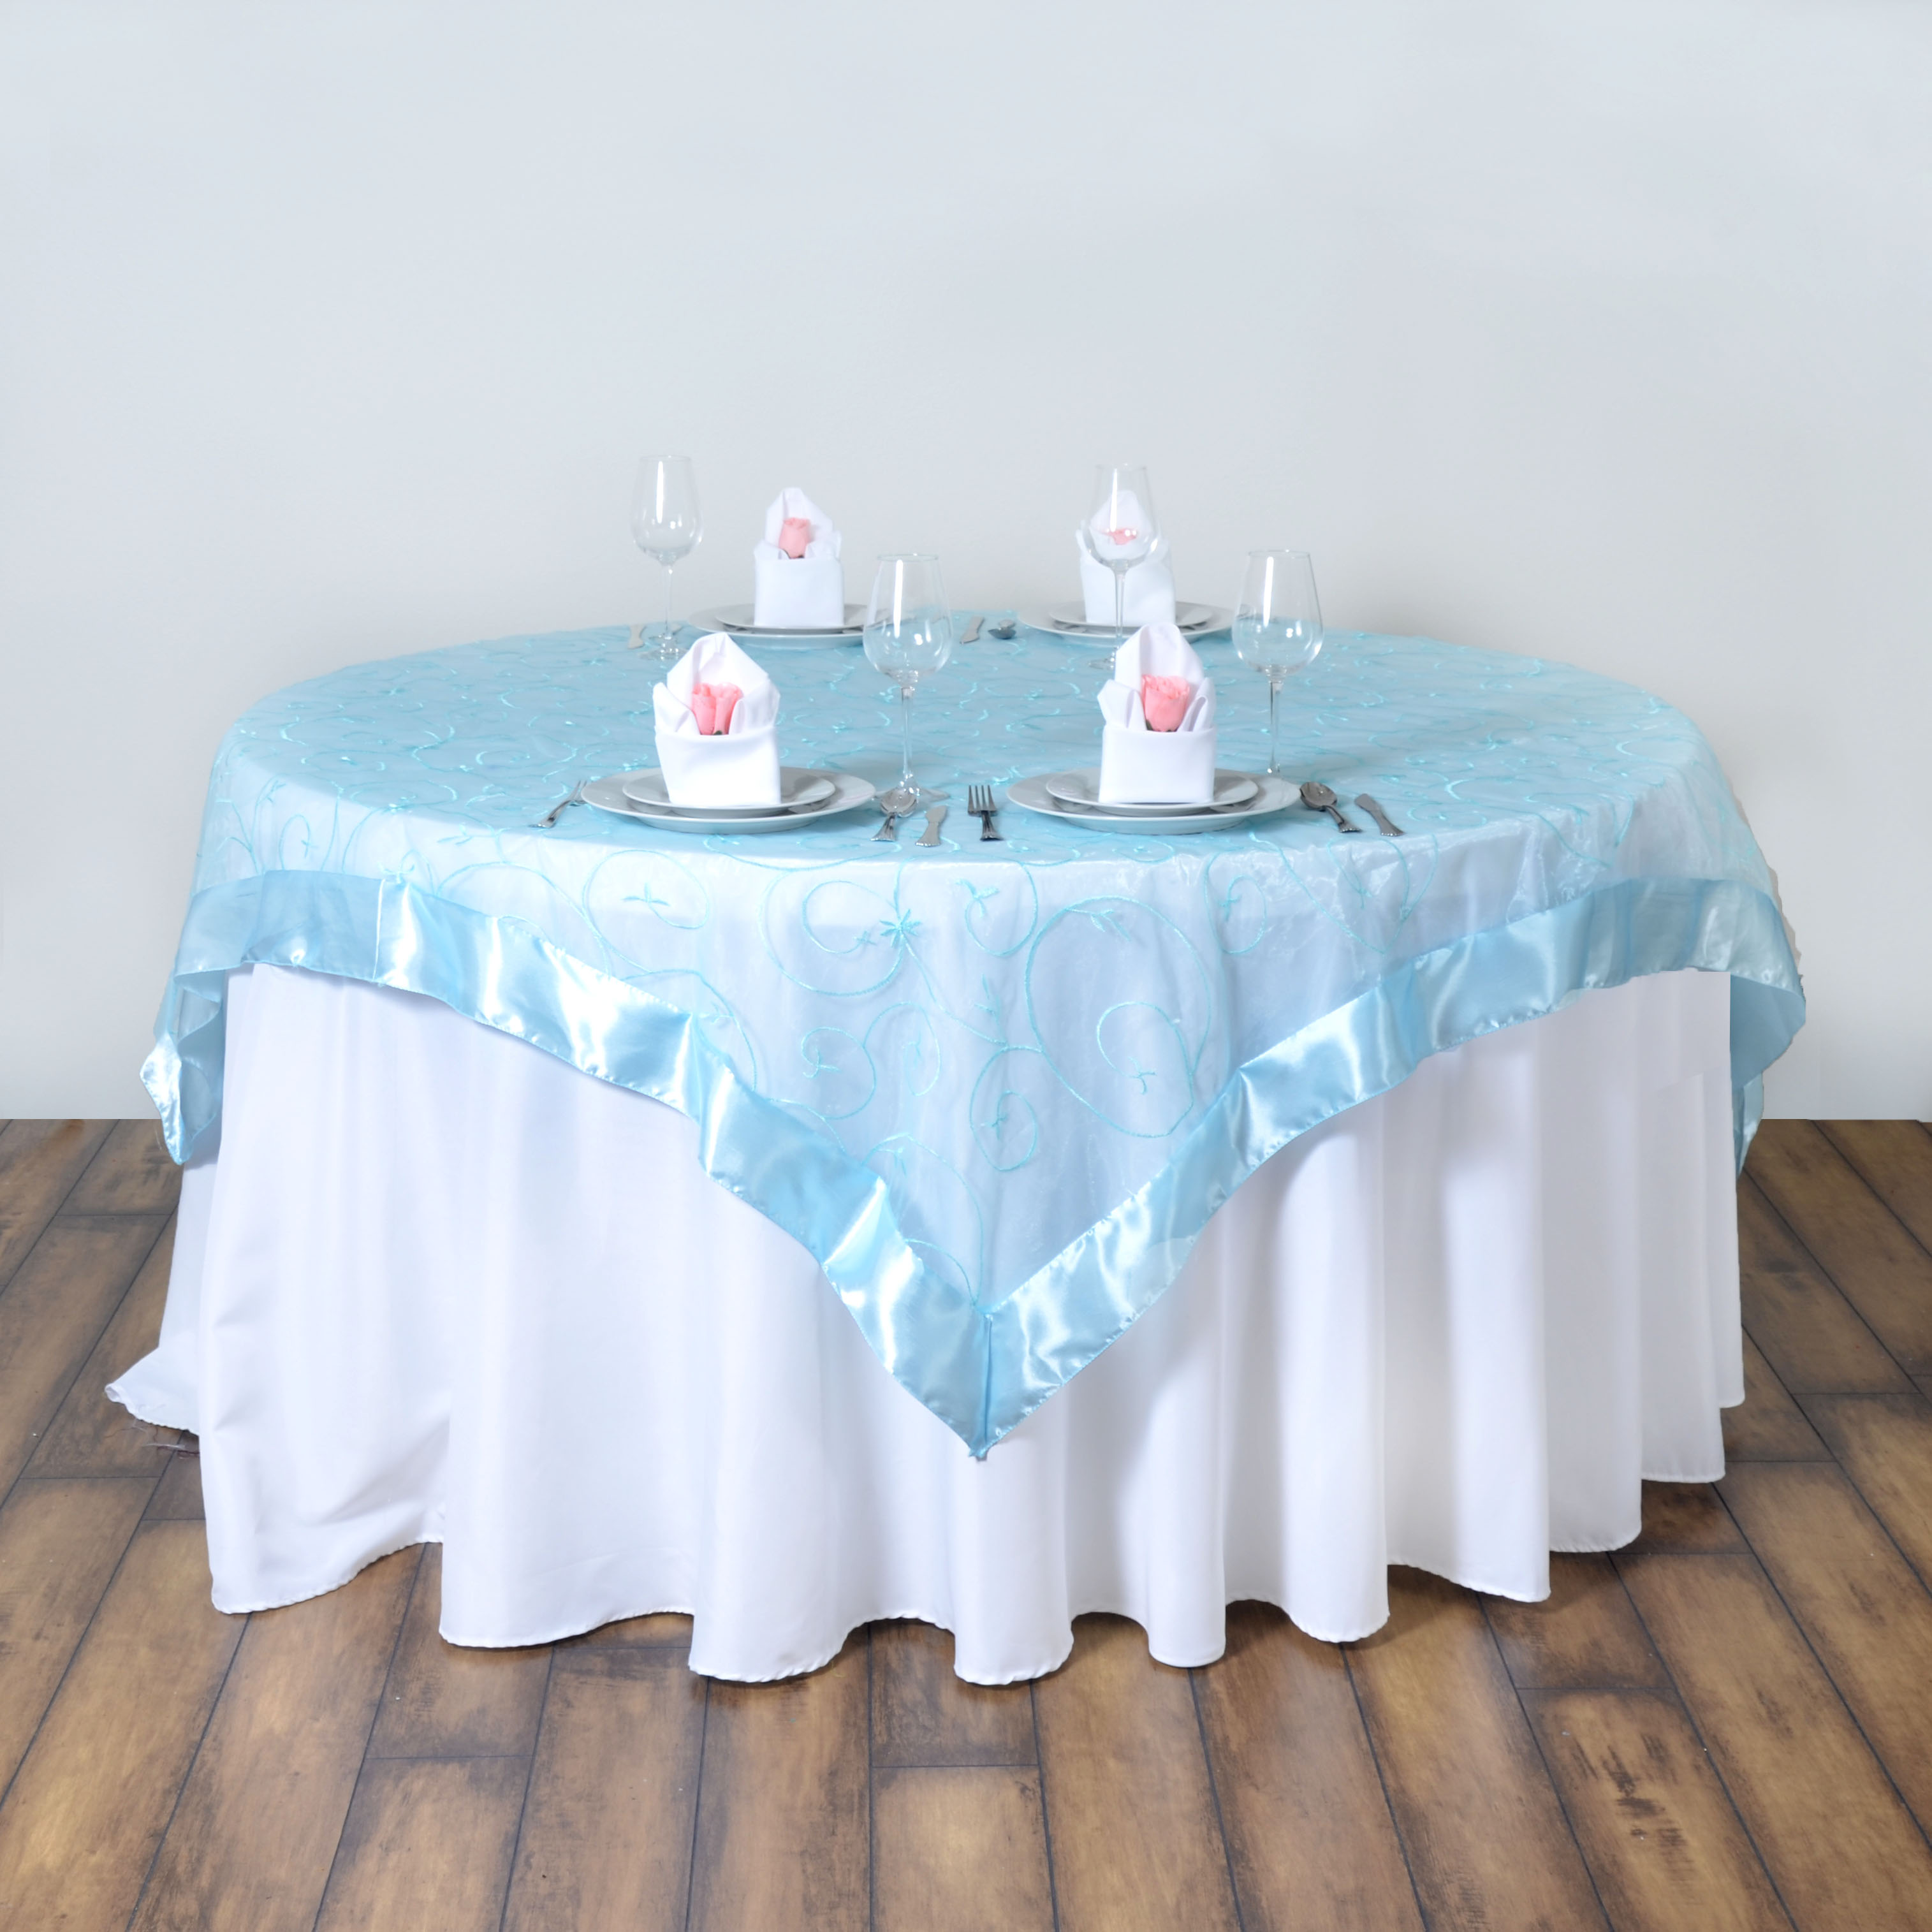 10 Embroidered Organza 60x60 034 SQUARE Table OVERLAYS